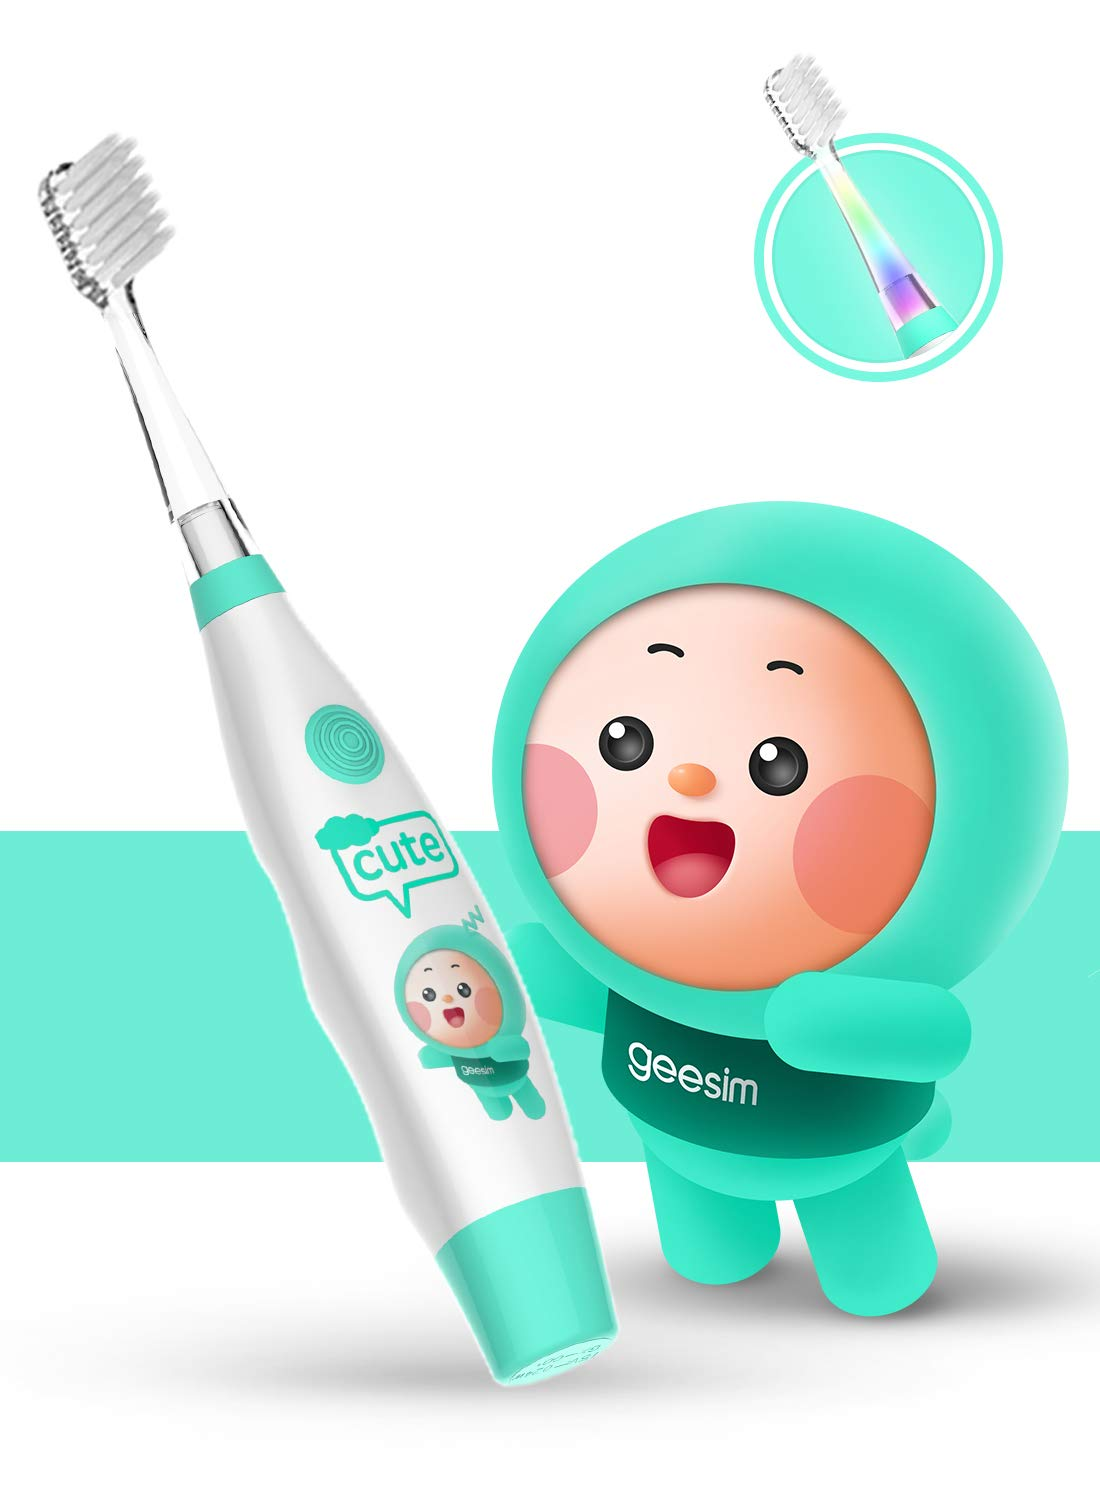 kids& Baby Toothbrush Electric Sonic Battery Powered With Smart Timer and Colorful LED, Baby &kids Electric Toothbrushes-Baby Sonic Toothbtush(BLUE)